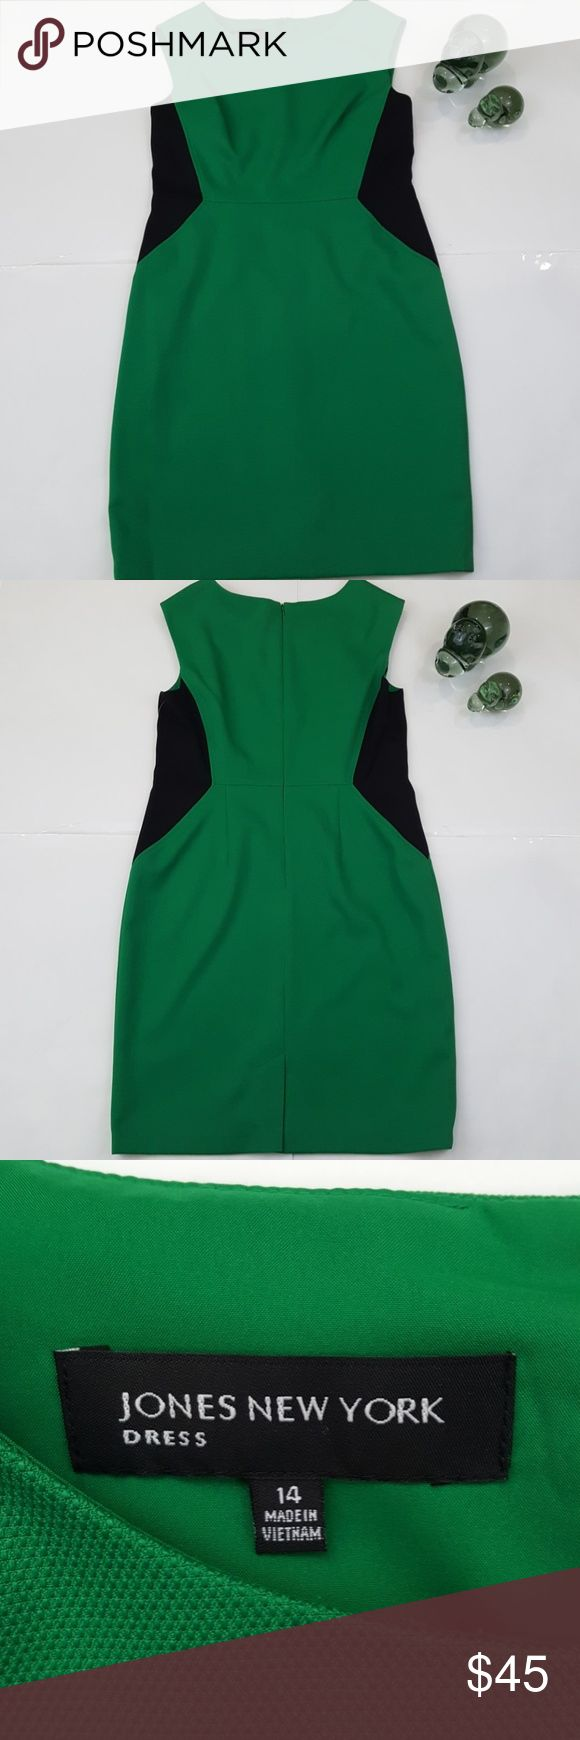 NWT Jones New York Emerald Green Dress Sz 14 Jones New York Dress Size 14 Colour Emerald Green & Black Zip On Back Fully Lined Measurements: Shoulder To Shoulder 18 Inchs Bust 21 Inchs Waist 18 Inchs Length 38.5 Inchs NWT Jones New York Dresses